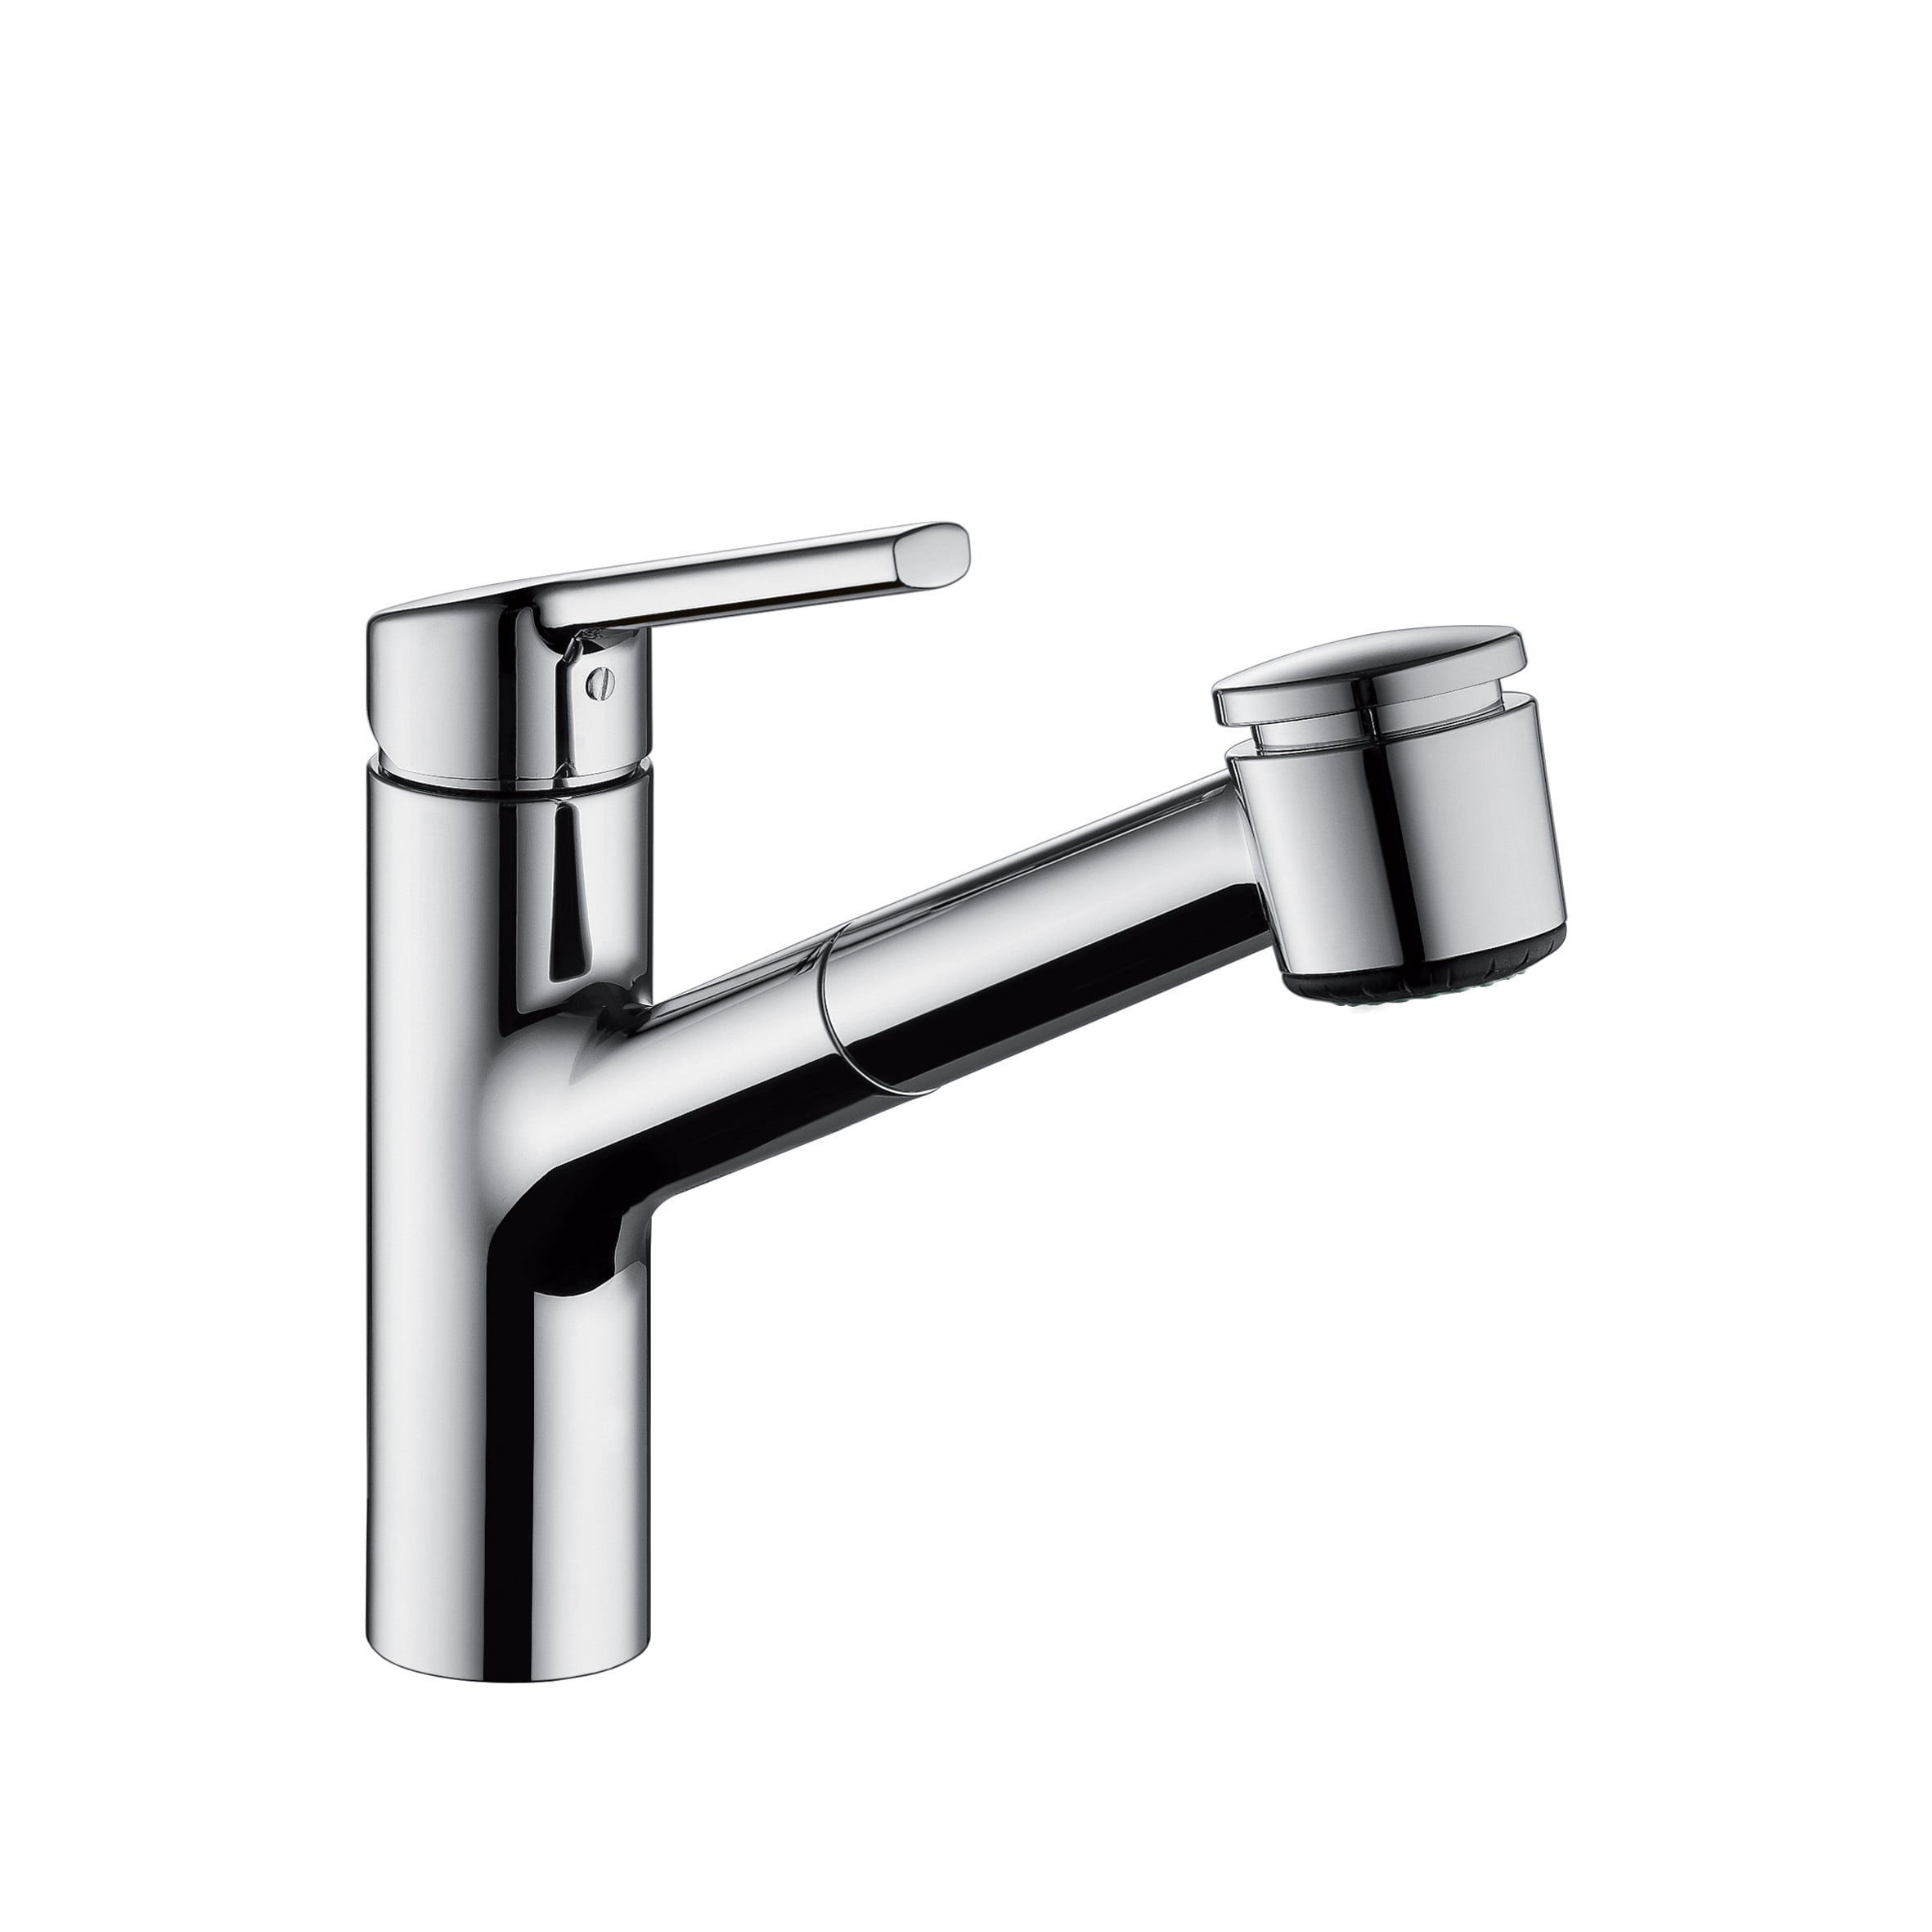 new of products faucets squeaky kitchen pattern contemporary faucet austinmartin kwc